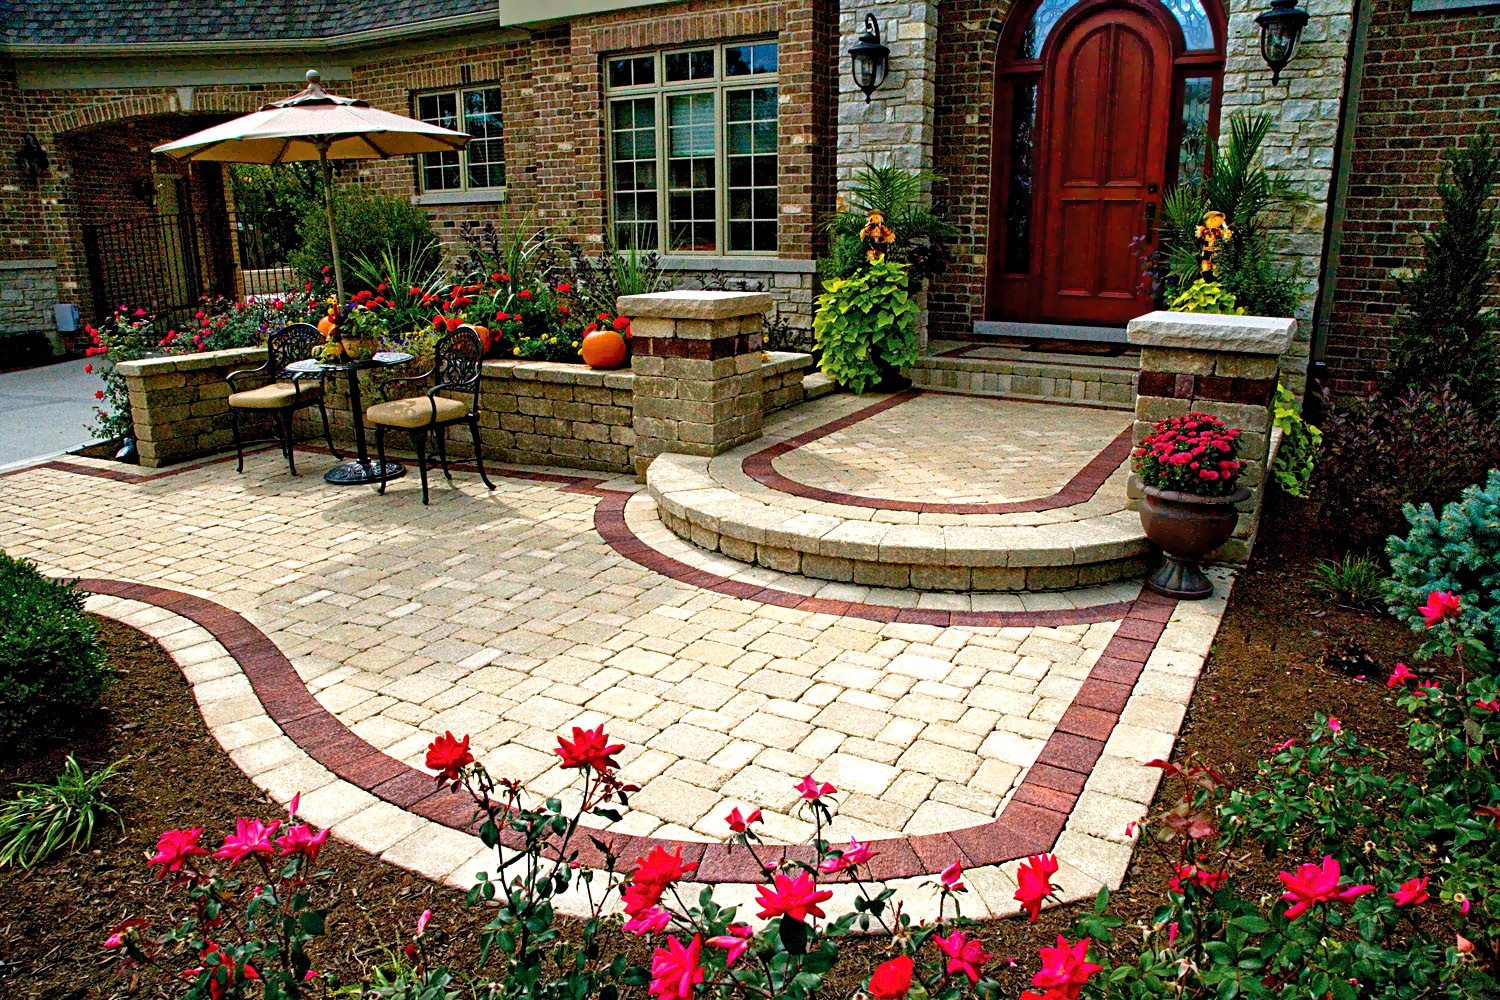 landscaper, Milwaukee landscaping, landscaping companies, patio installers, paver contractors